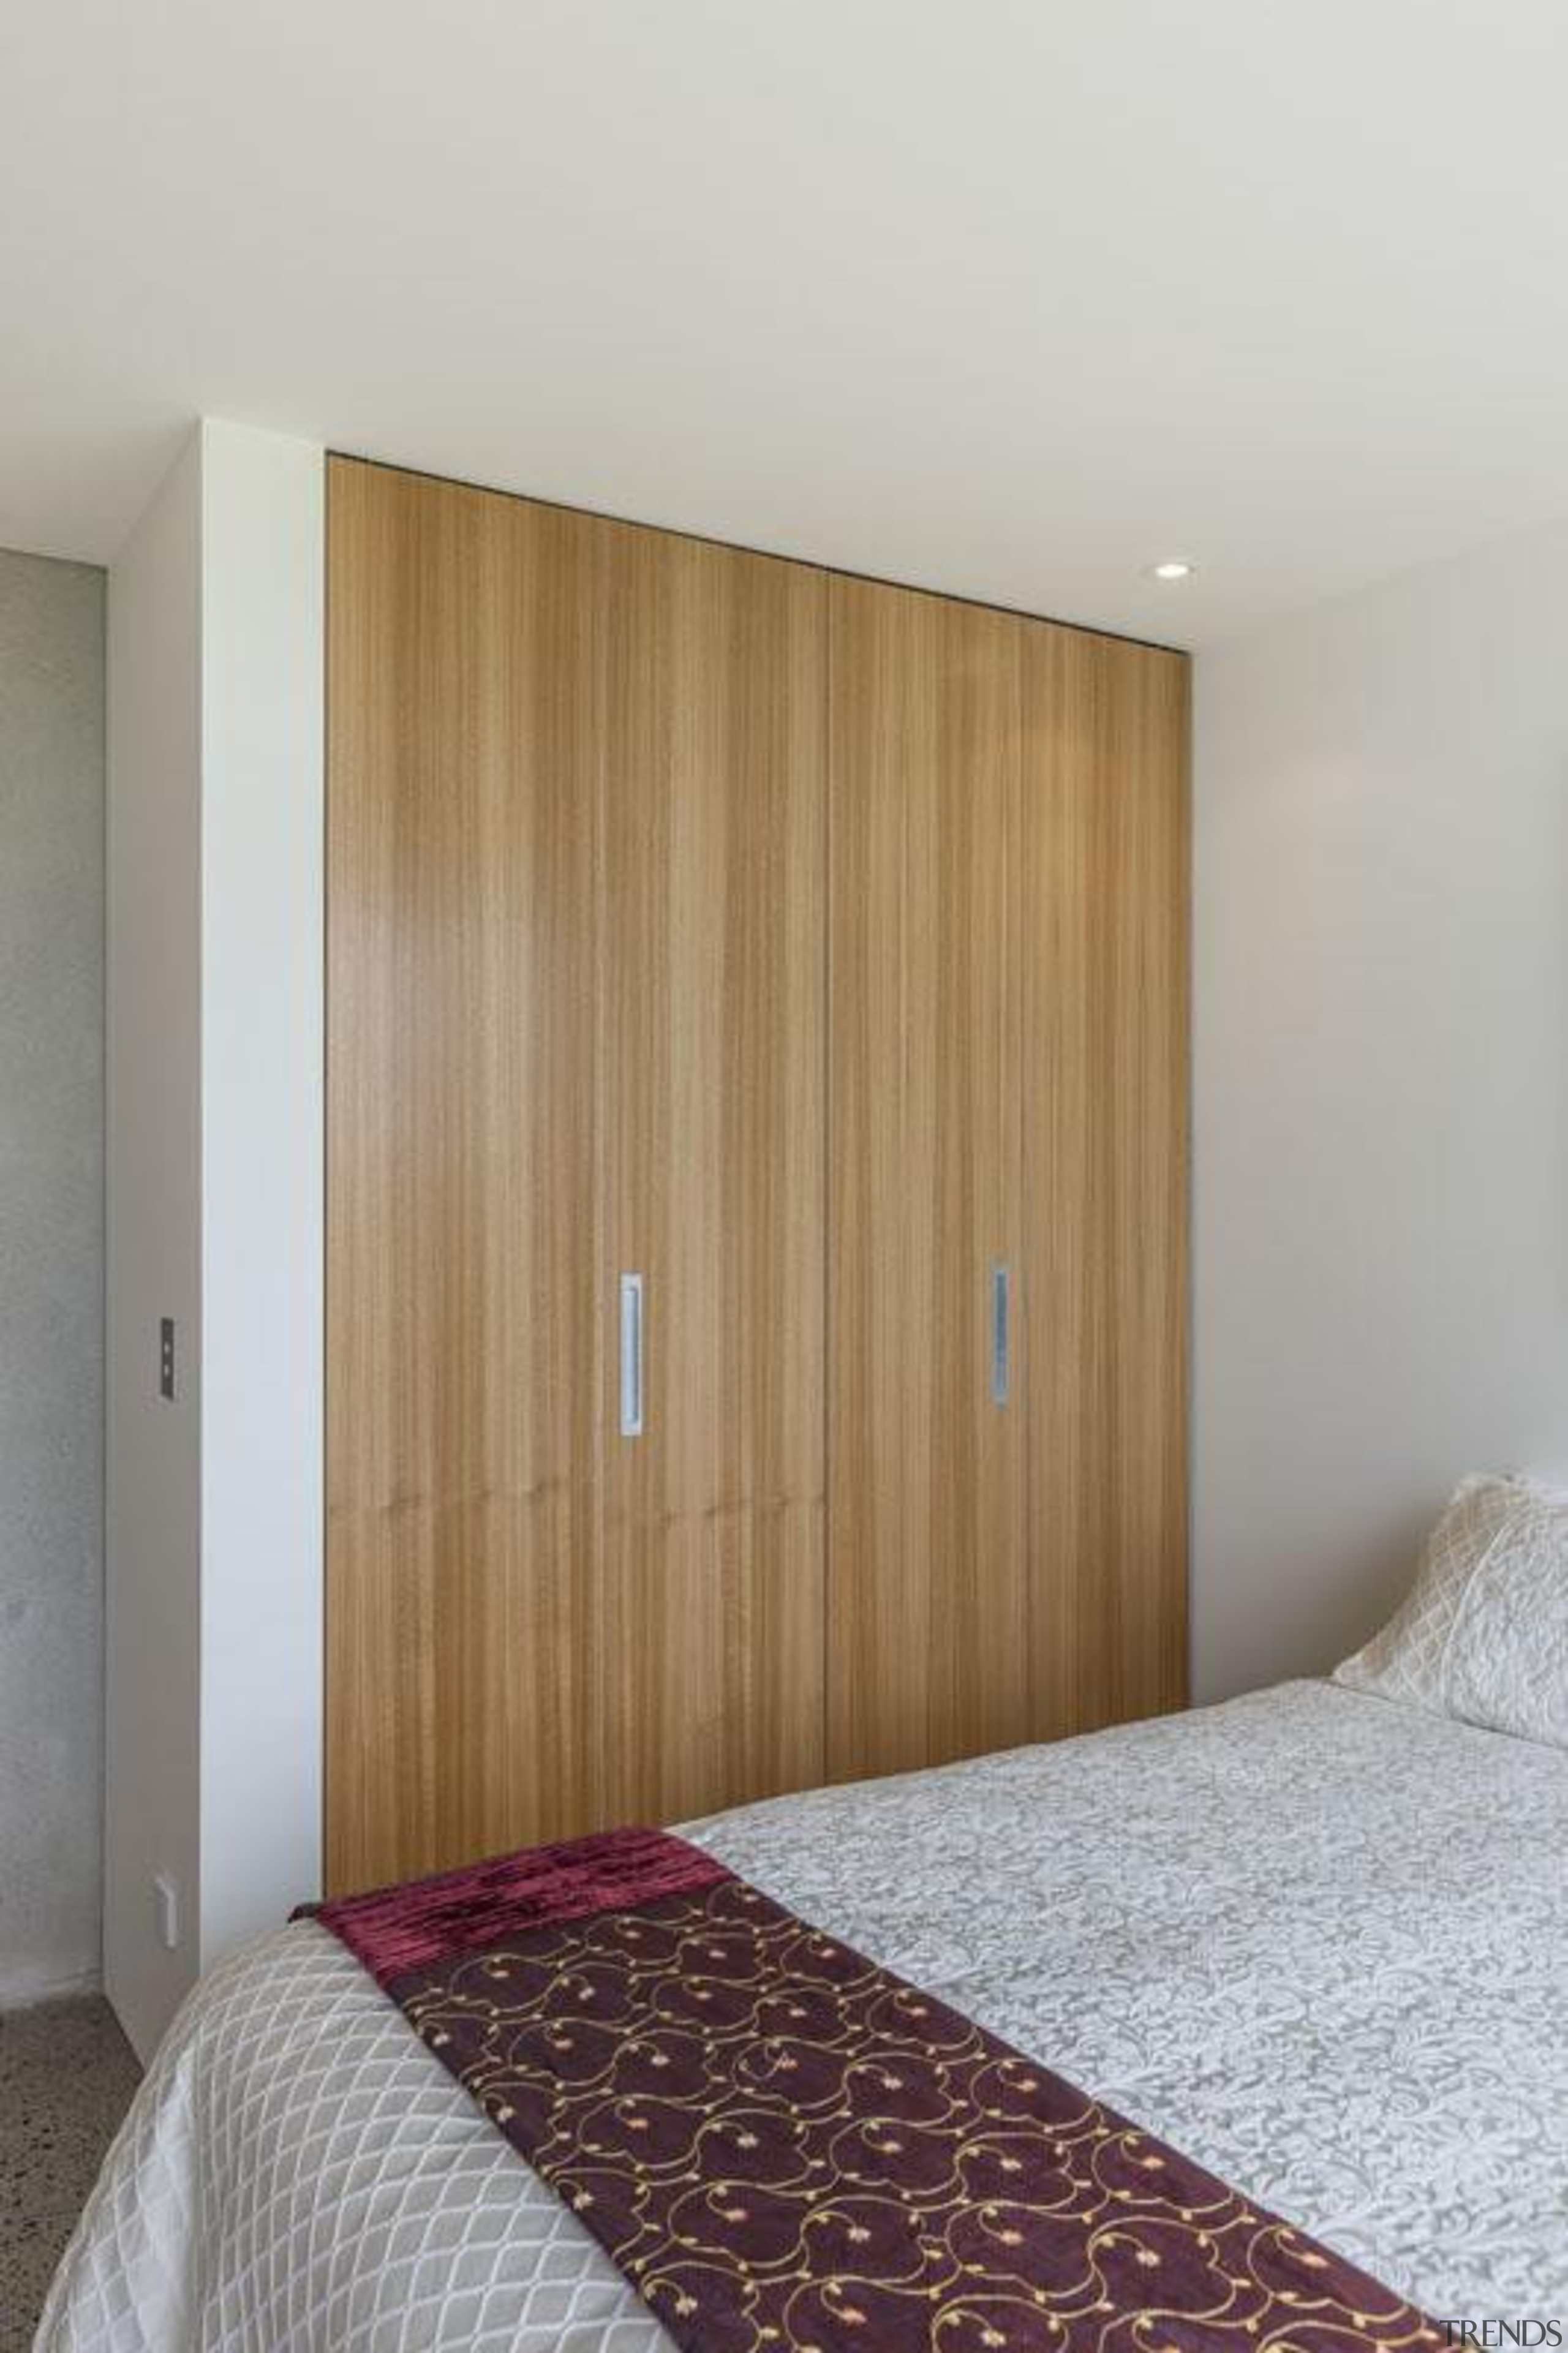 Bedroom Cabinet - architecture | bed | bedroom architecture, bed, bedroom, ceiling, door, floor, flooring, furniture, hardwood, house, interior design, laminate flooring, property, real estate, room, wall, wood, wood stain, gray